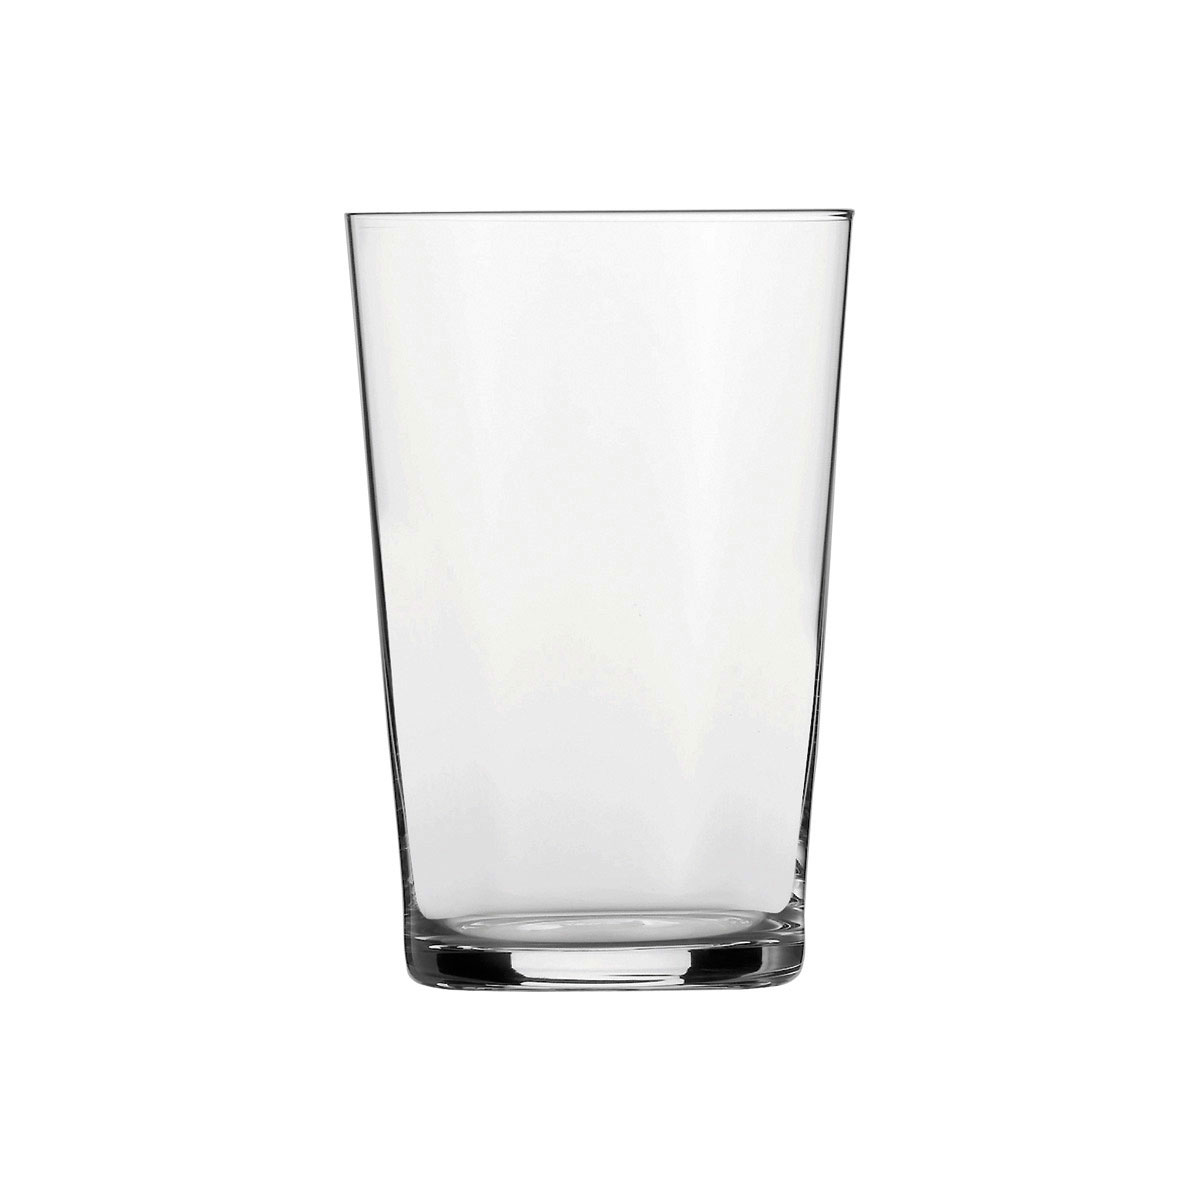 Schott Zwiesel Tritan Crystal, Charles Schumann Softdrink No. 2 Glass, Single